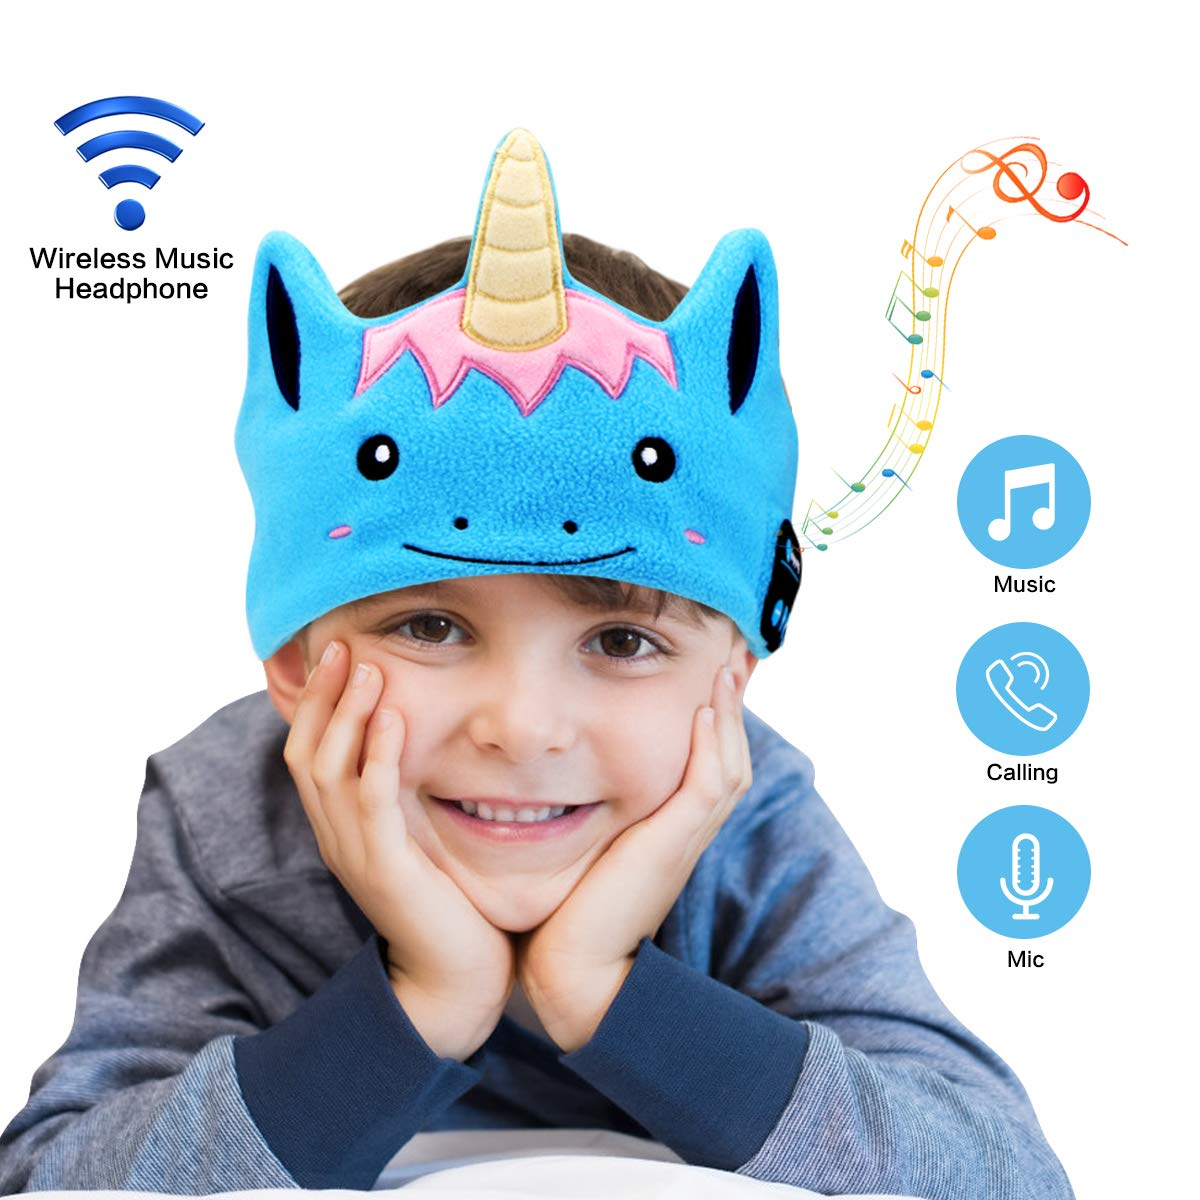 Kids headphones headbands,WU-MINGLU Soft Fleece Bluetooth Headbands Sleep Headphones wih Ultra-Thin Speakers, Children\'s Earphones for School, Home and Travel, Christmas Gift Idea